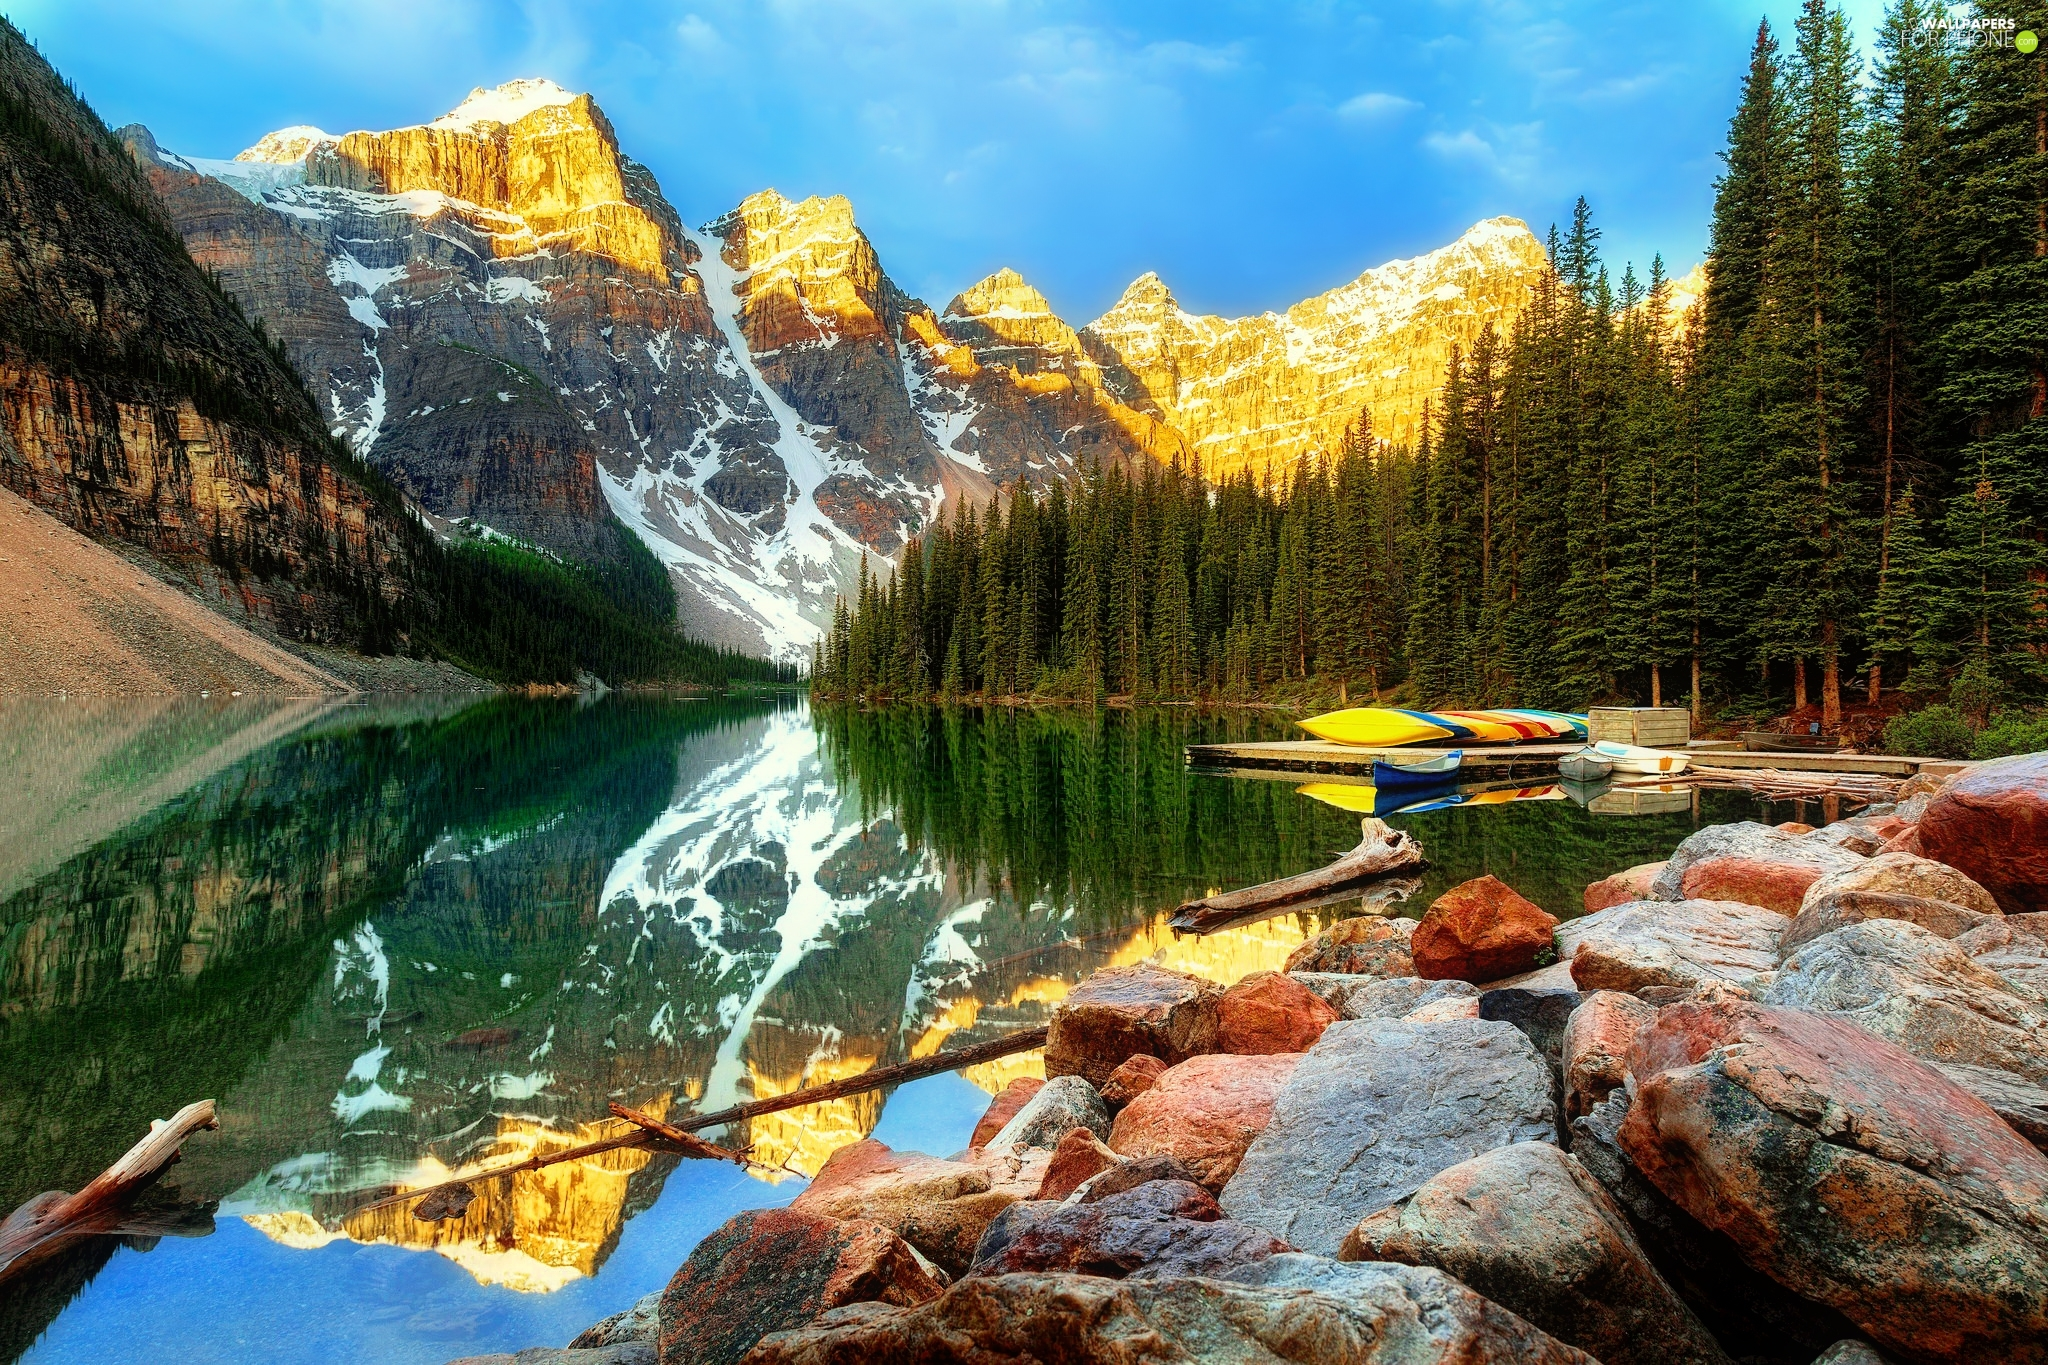 Province of Alberta, Canada, Banff National Park, Mountains, Stones, reflection, Lake Moraine, Valley of the Ten Peaks, forest